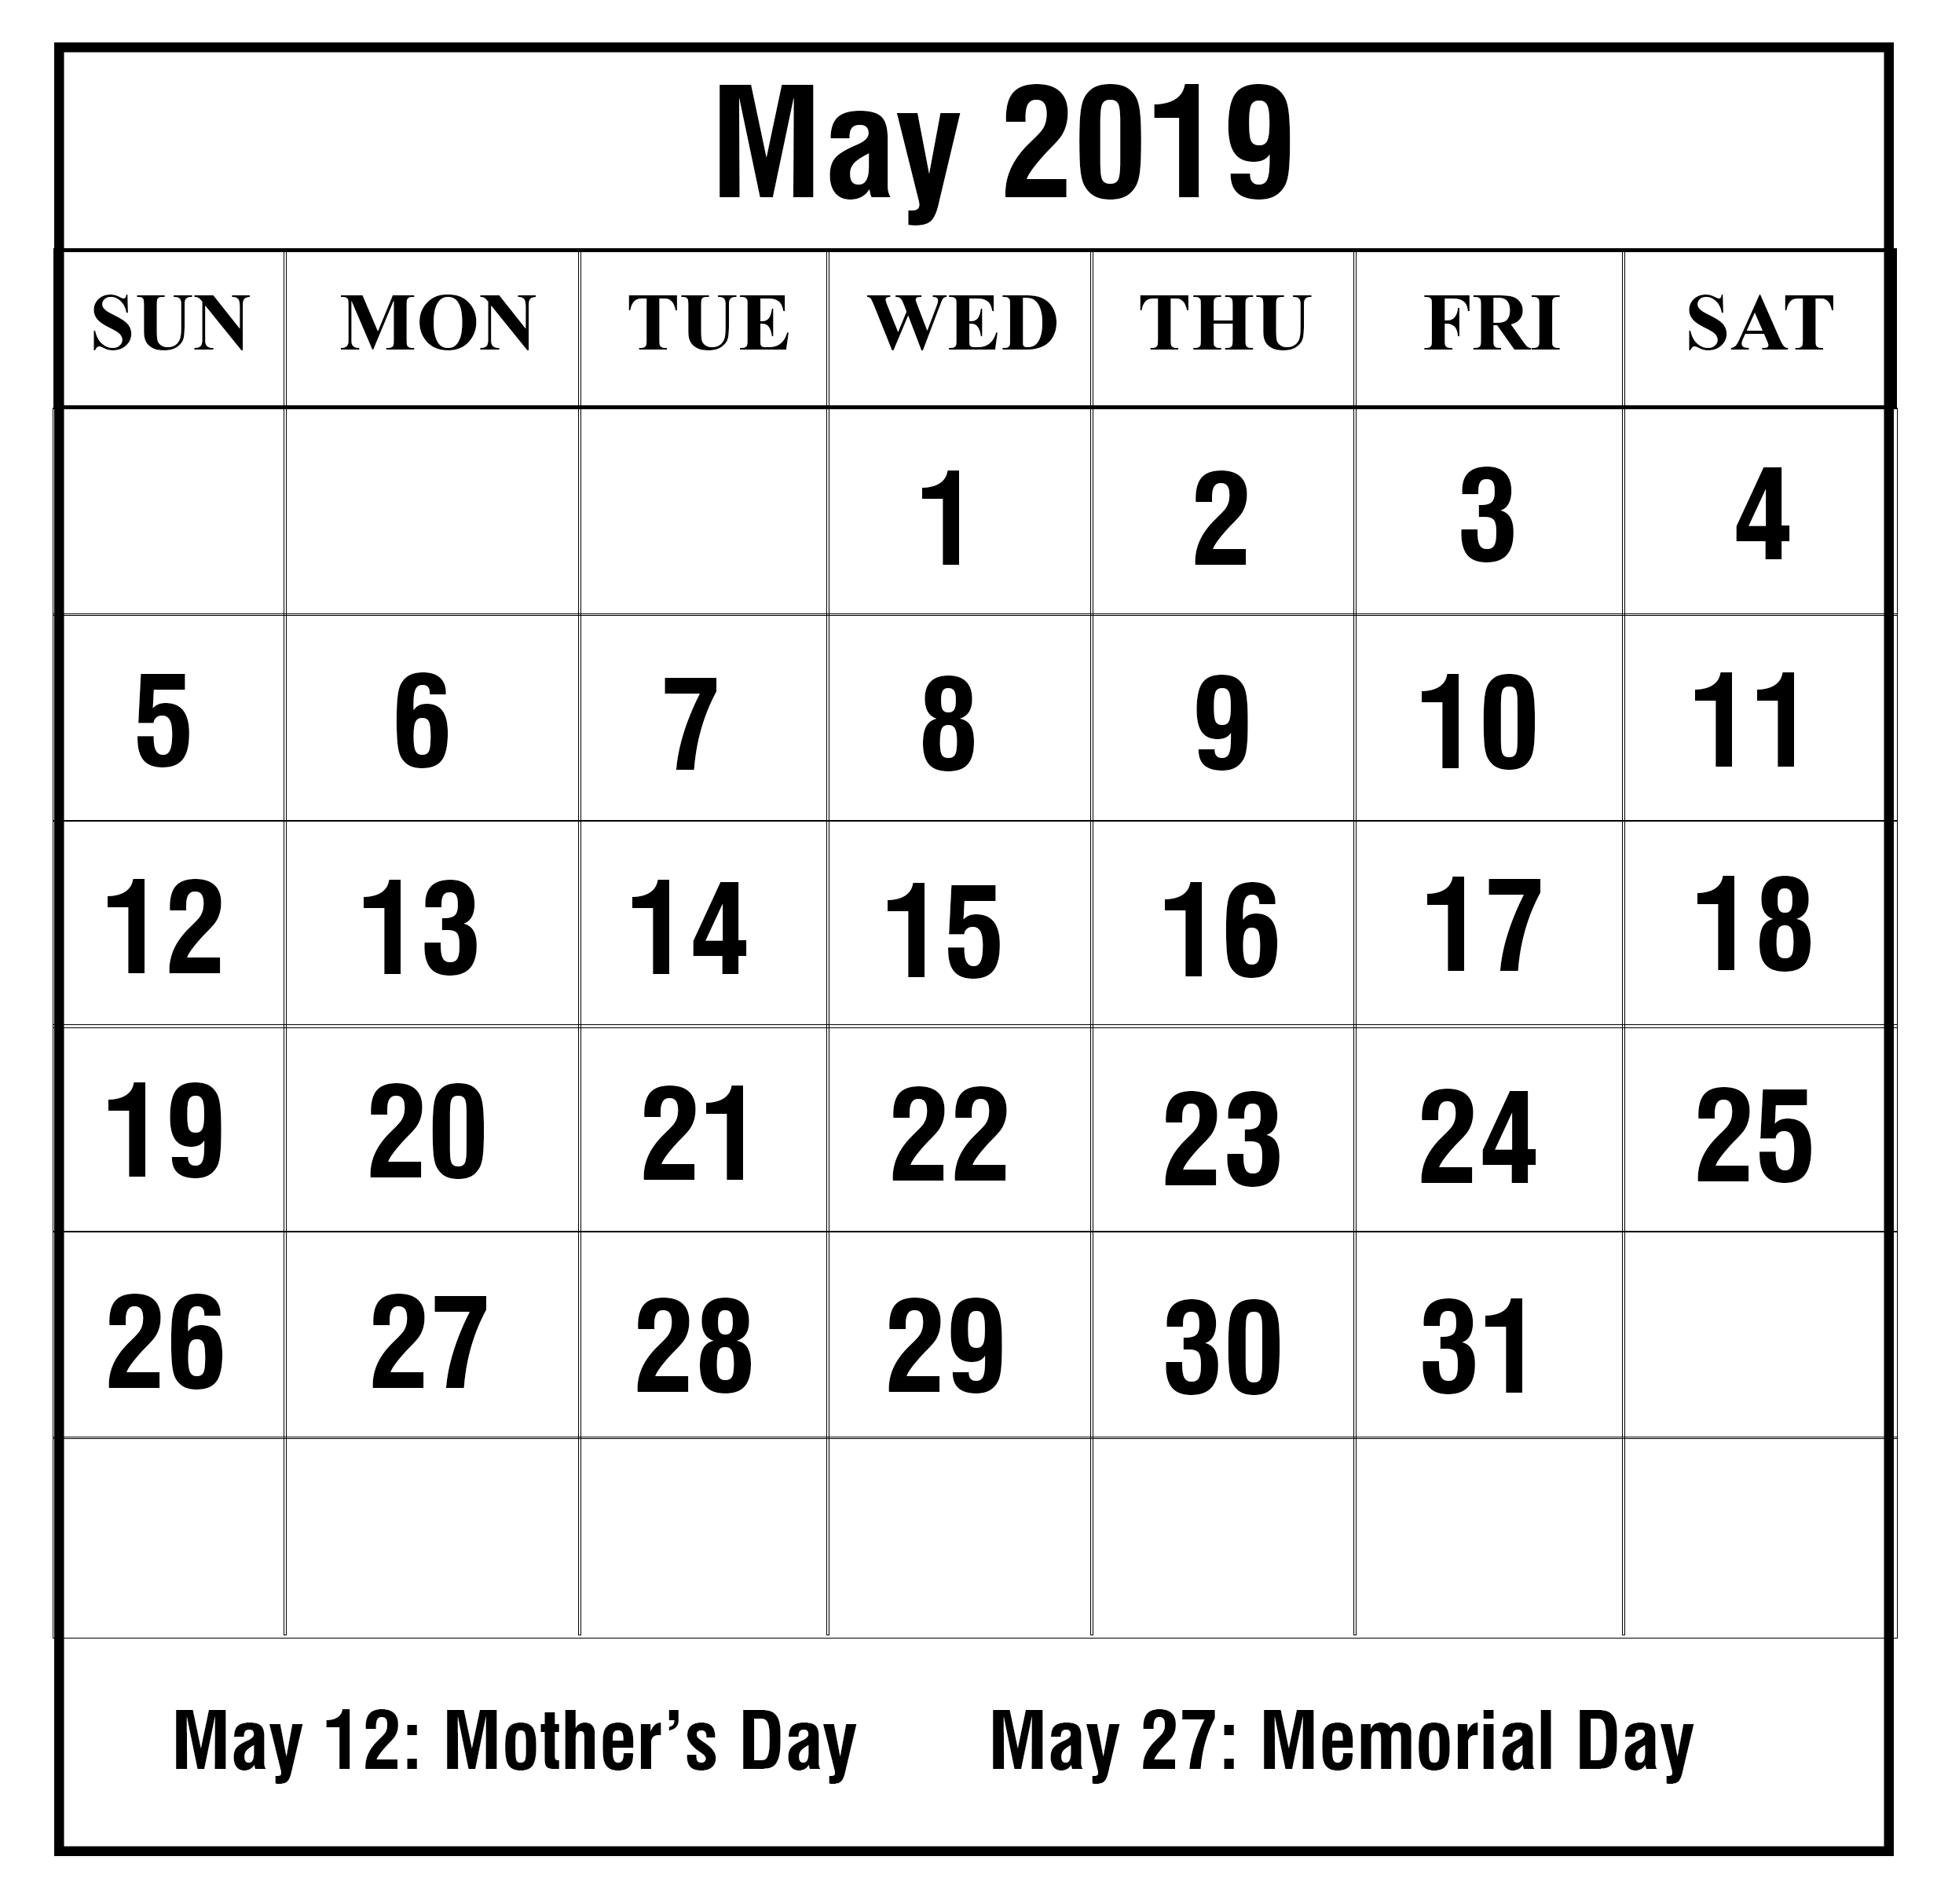 Free May 2019 Printable Calendar In Pdf, Word, Excel | Printable May May 7 2019 Calendar